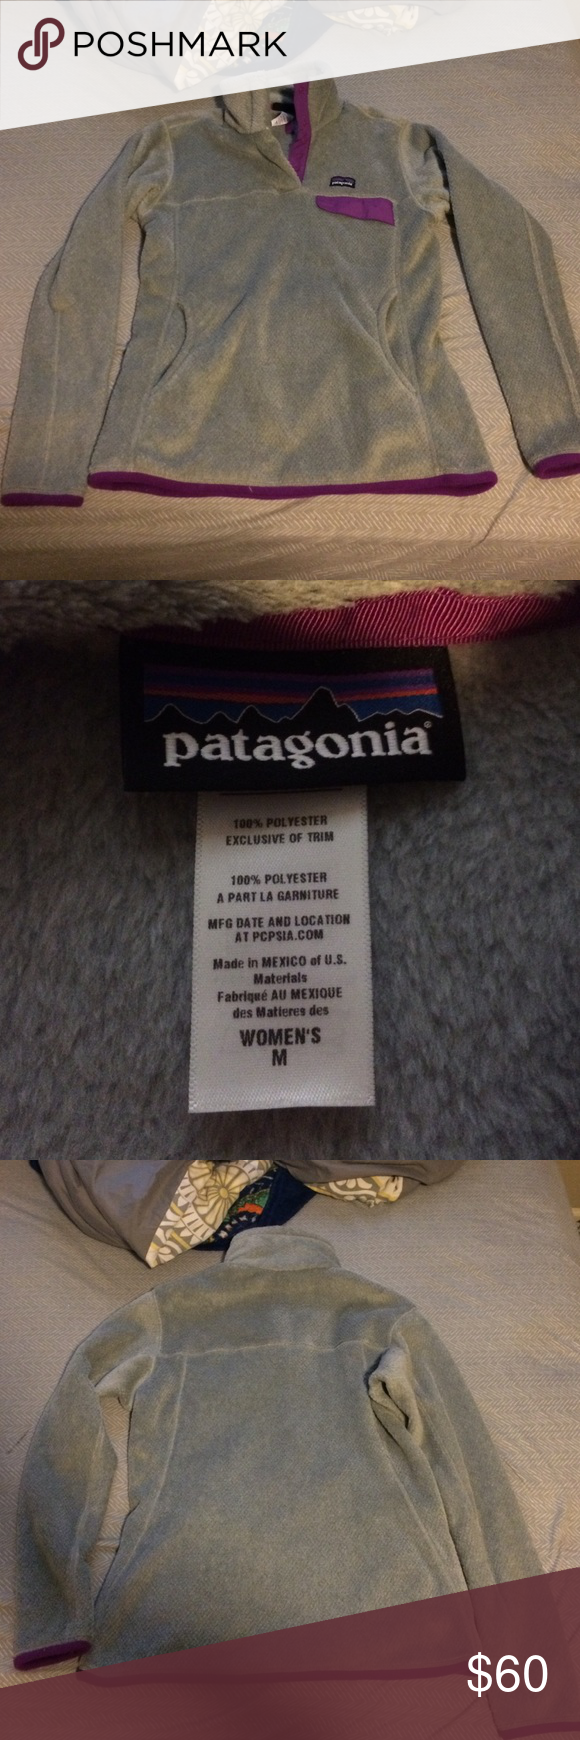 Women's Medium Patagonia Fleece Pullover grey with purple trim on bottom, inside collar, and pocket Patagonia Jackets & Coats